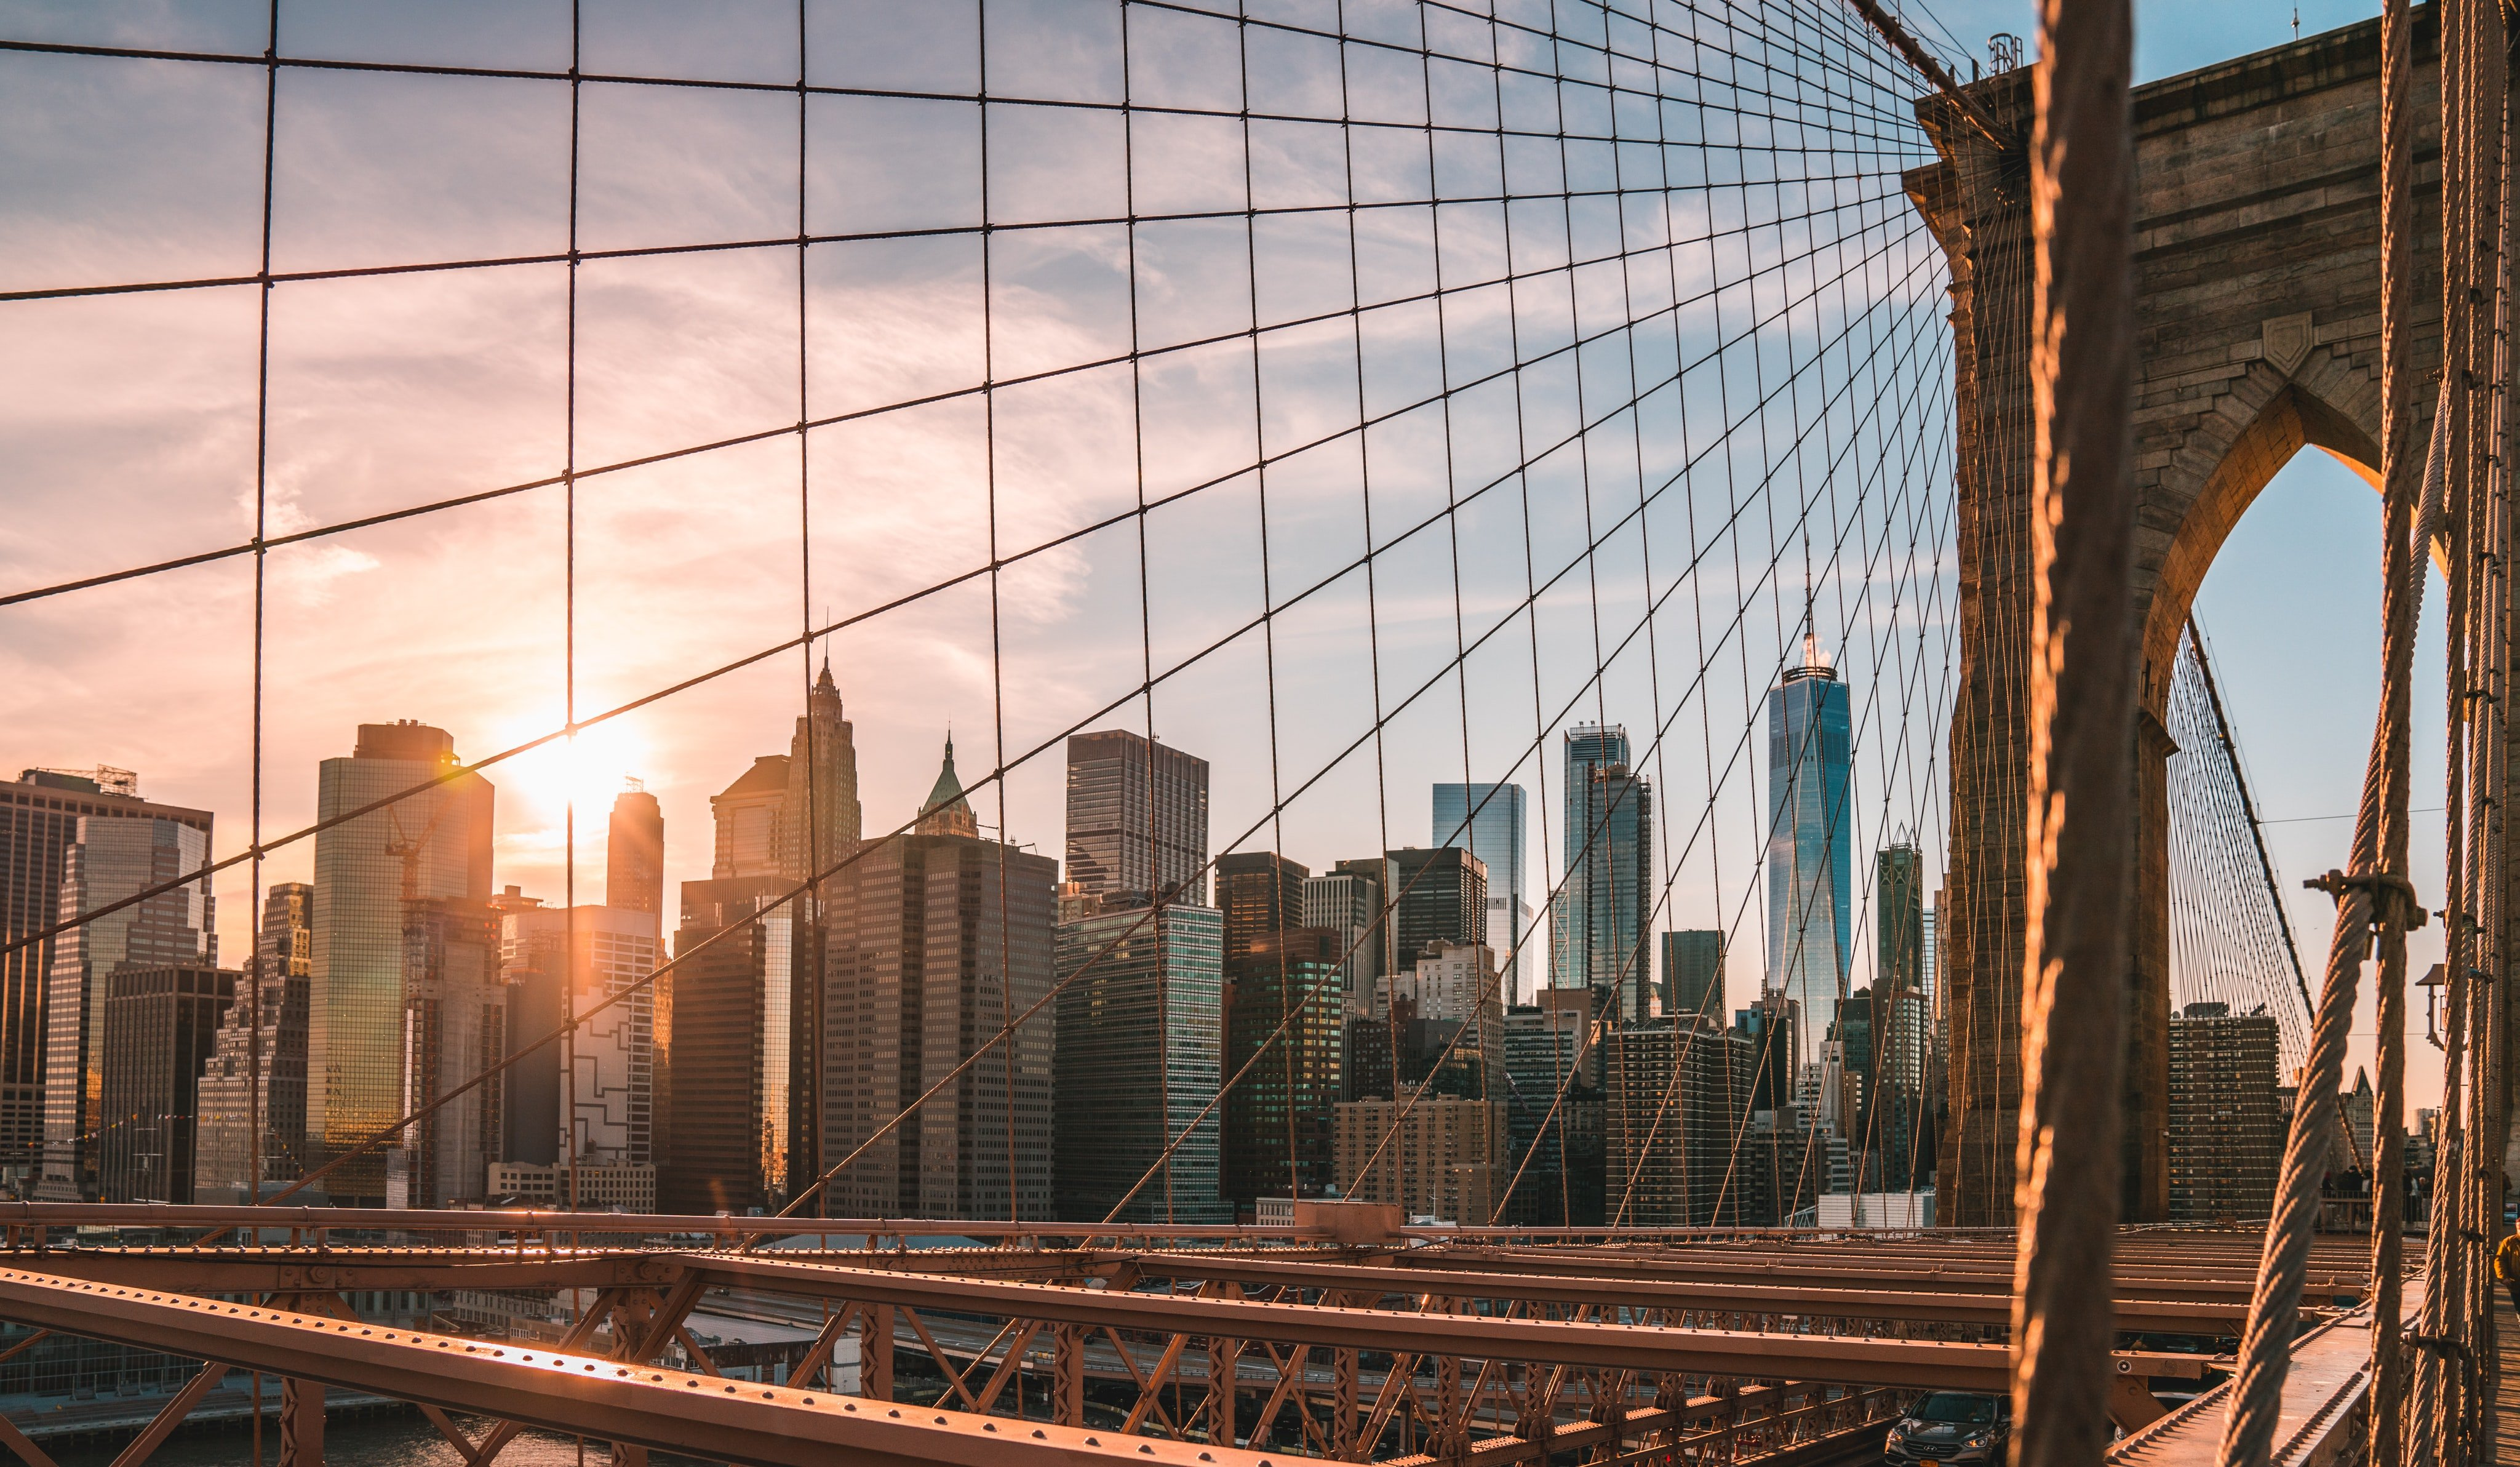 The skyline of New York as seen from the Brooklyn Bridge